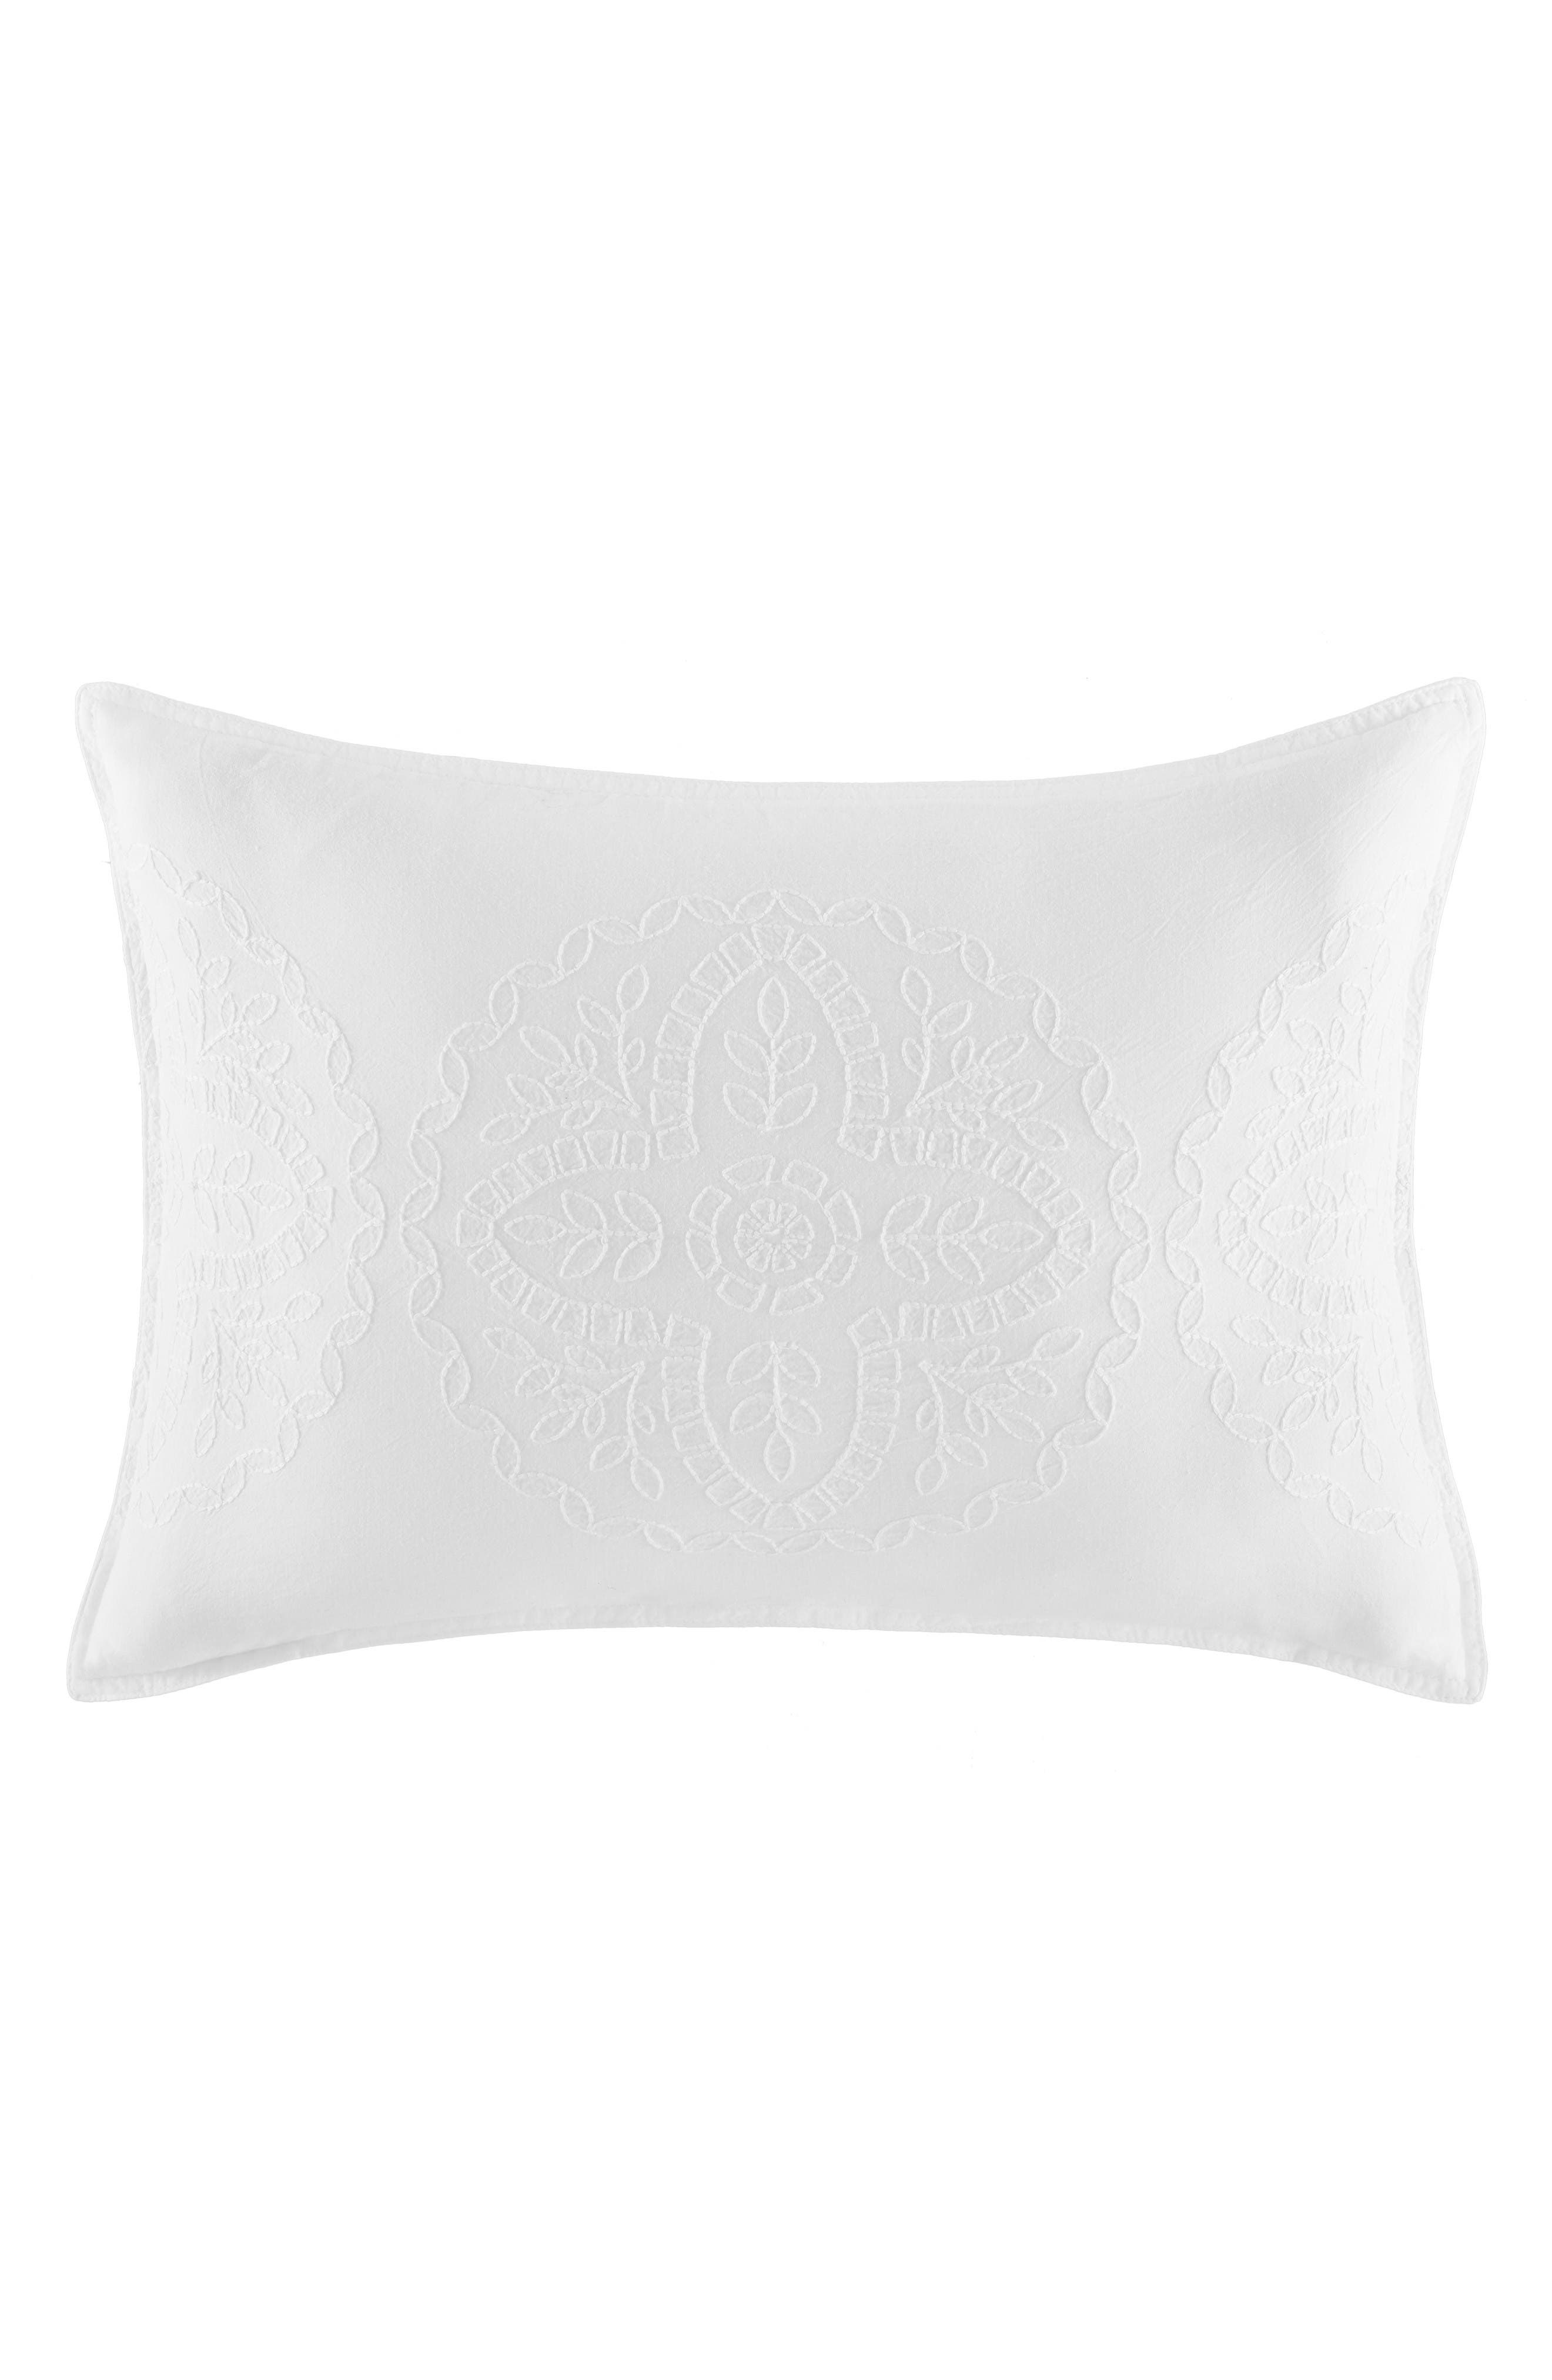 Main Image - Tommy Hilfiger Floral Medallion Accent Pillow